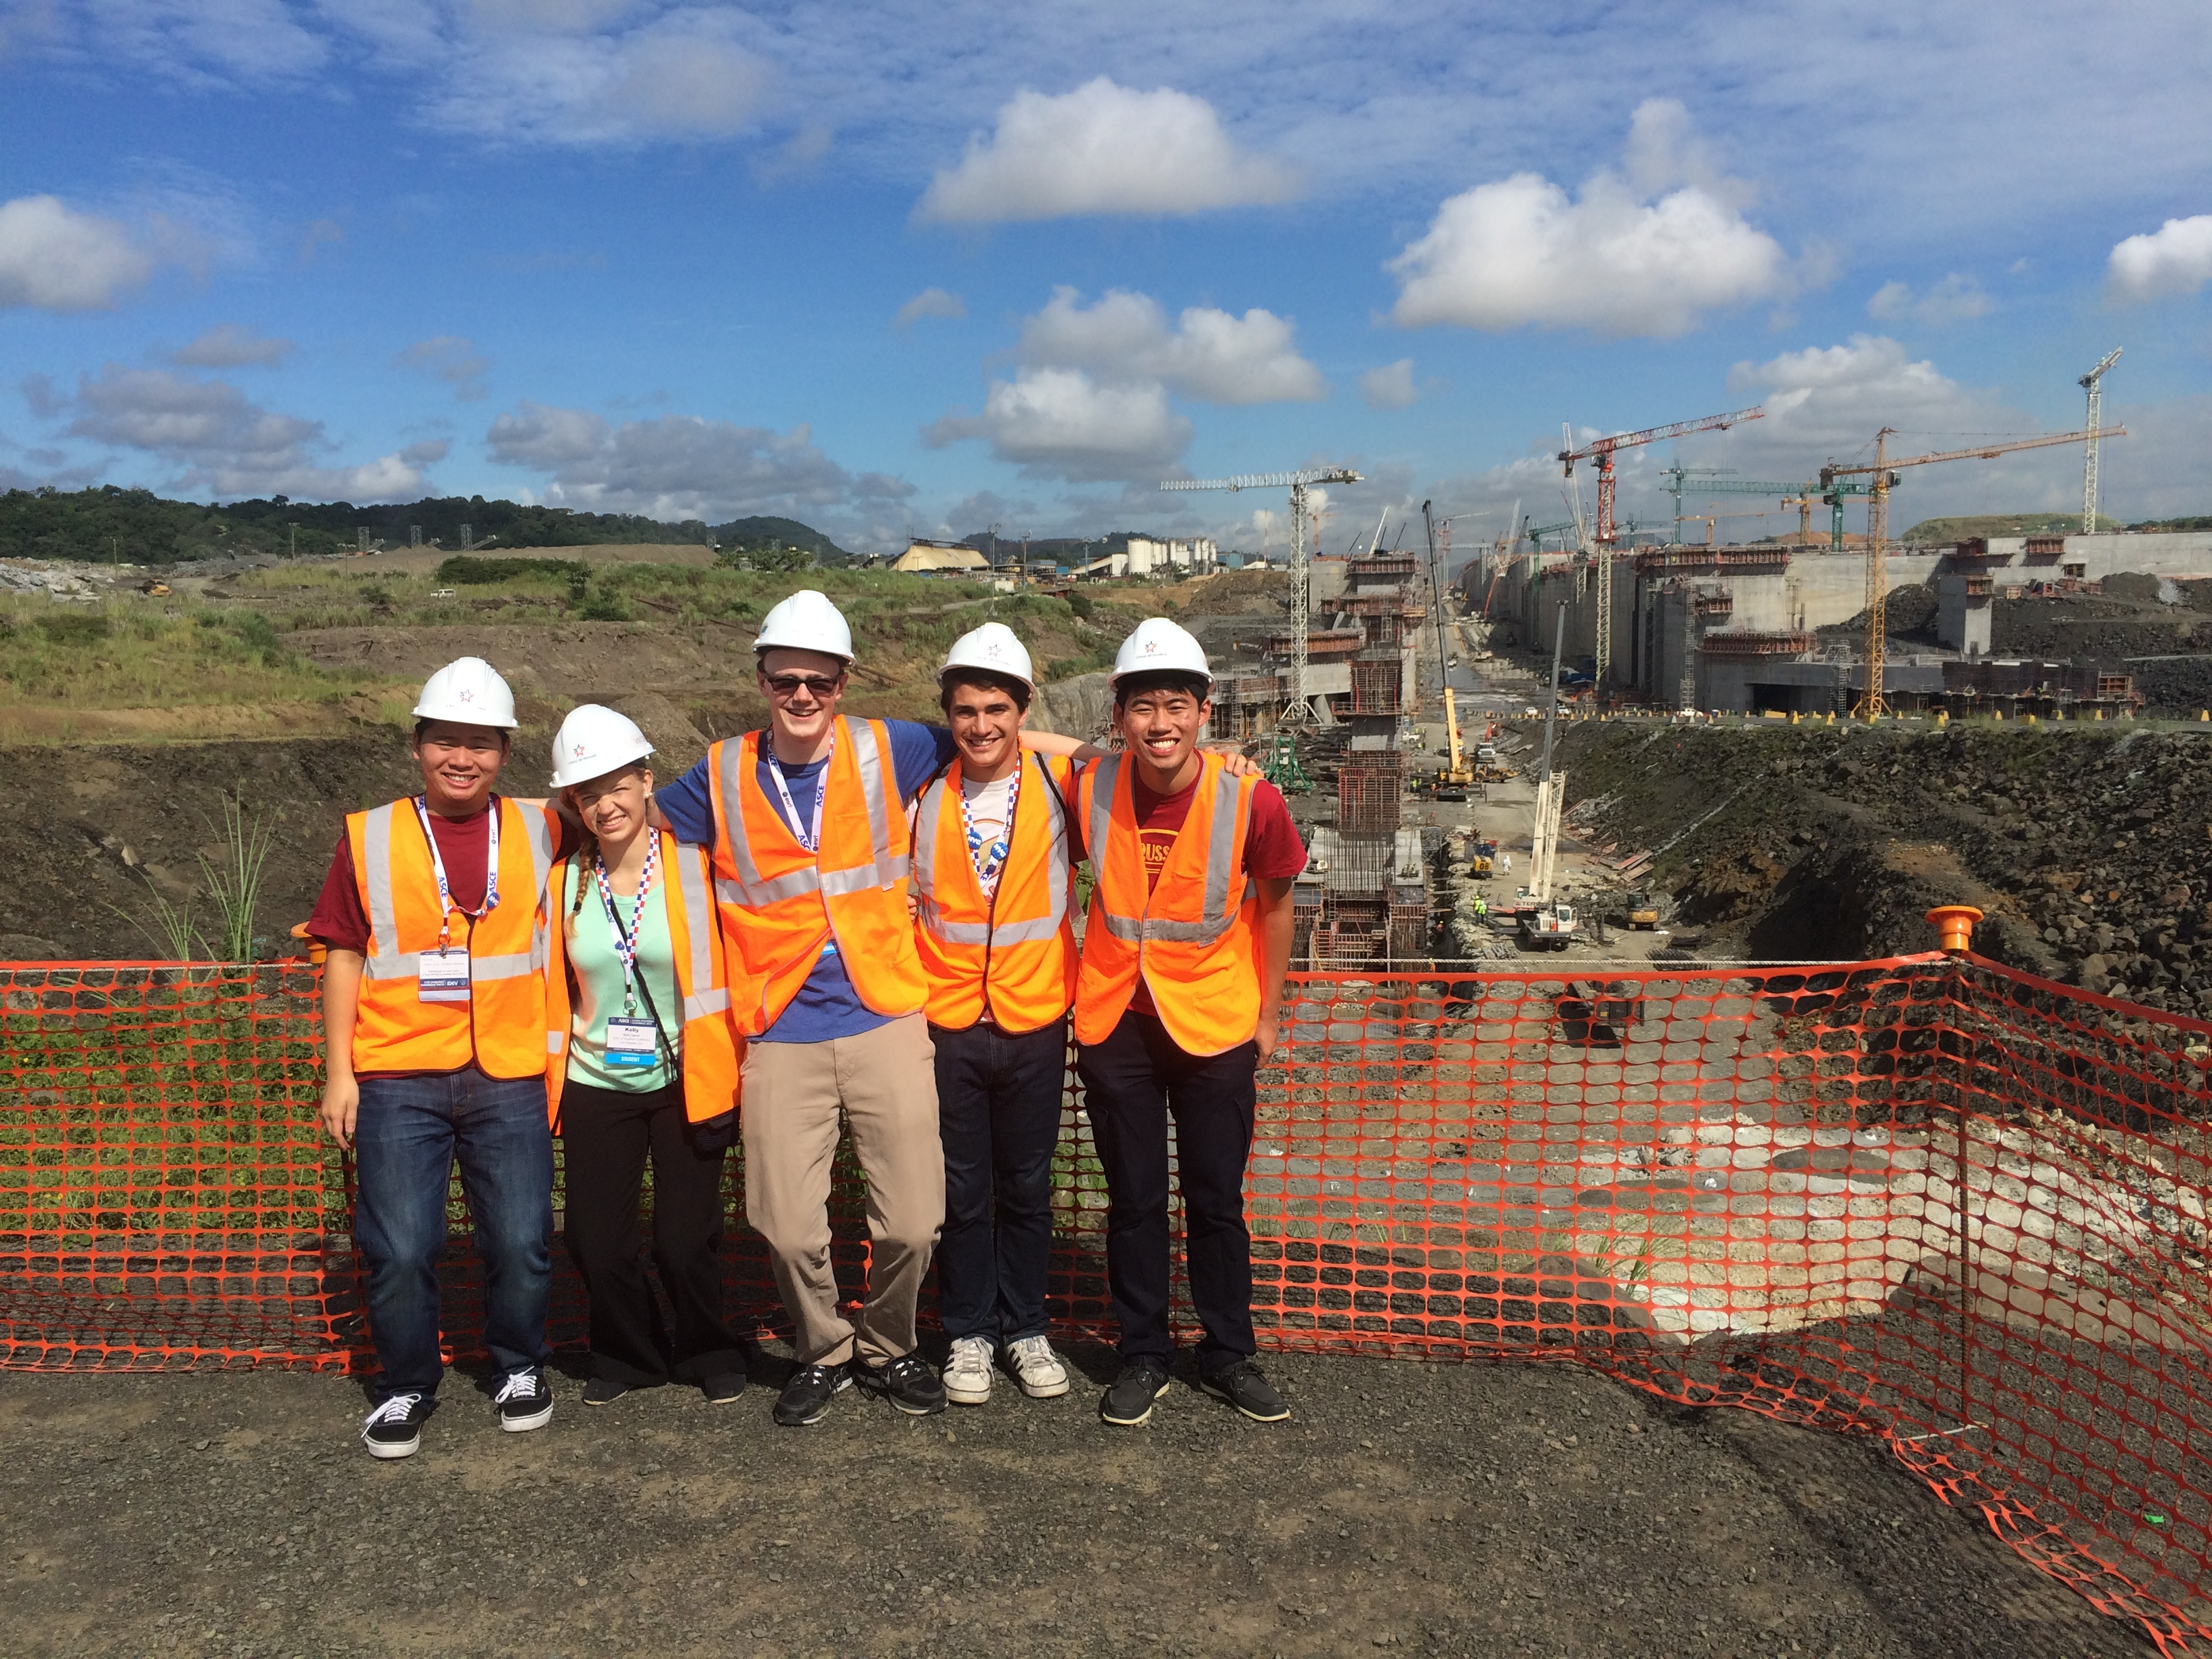 2014 ASCE Global Engineering Conference Panama in Pictures